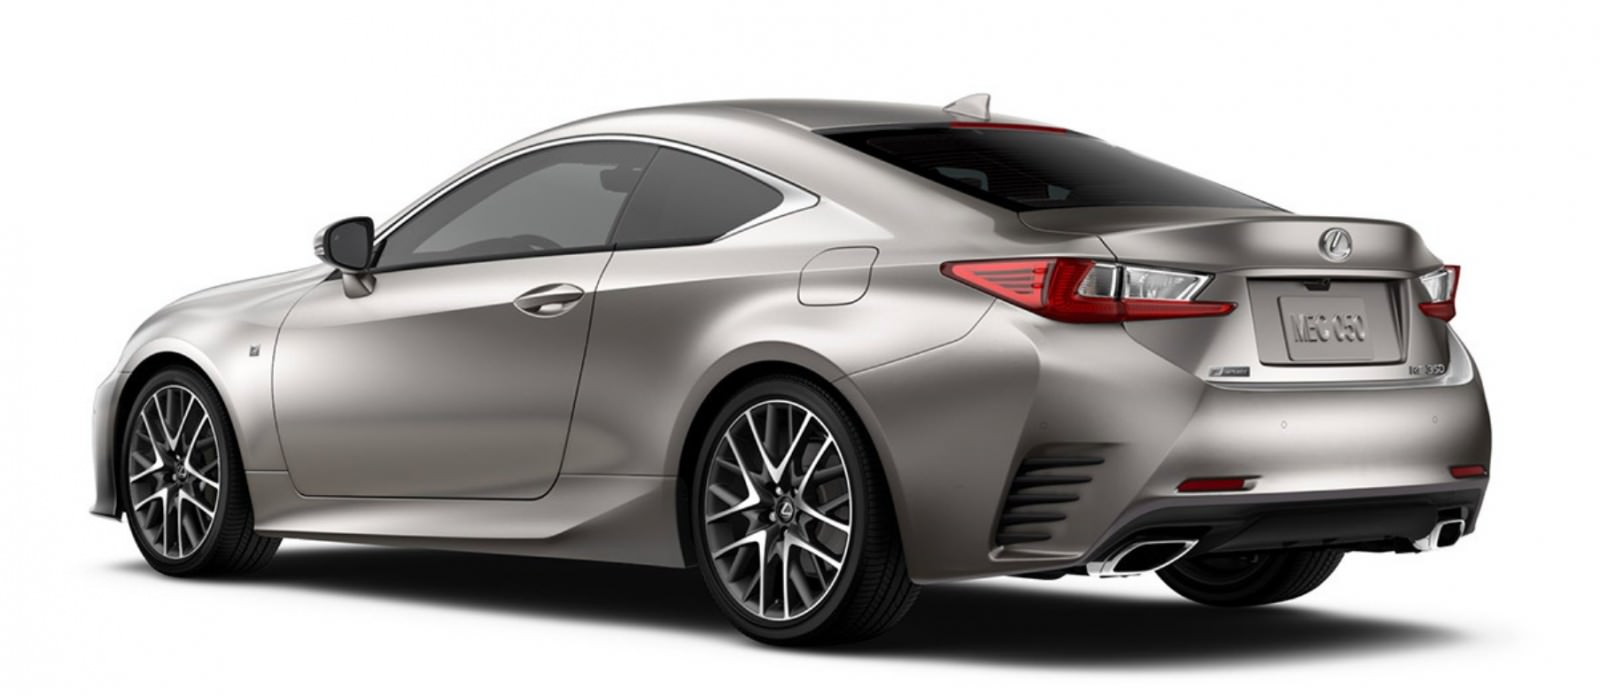 2015 lexus rc350 colors visualizer f sport vs standard 83. Black Bedroom Furniture Sets. Home Design Ideas